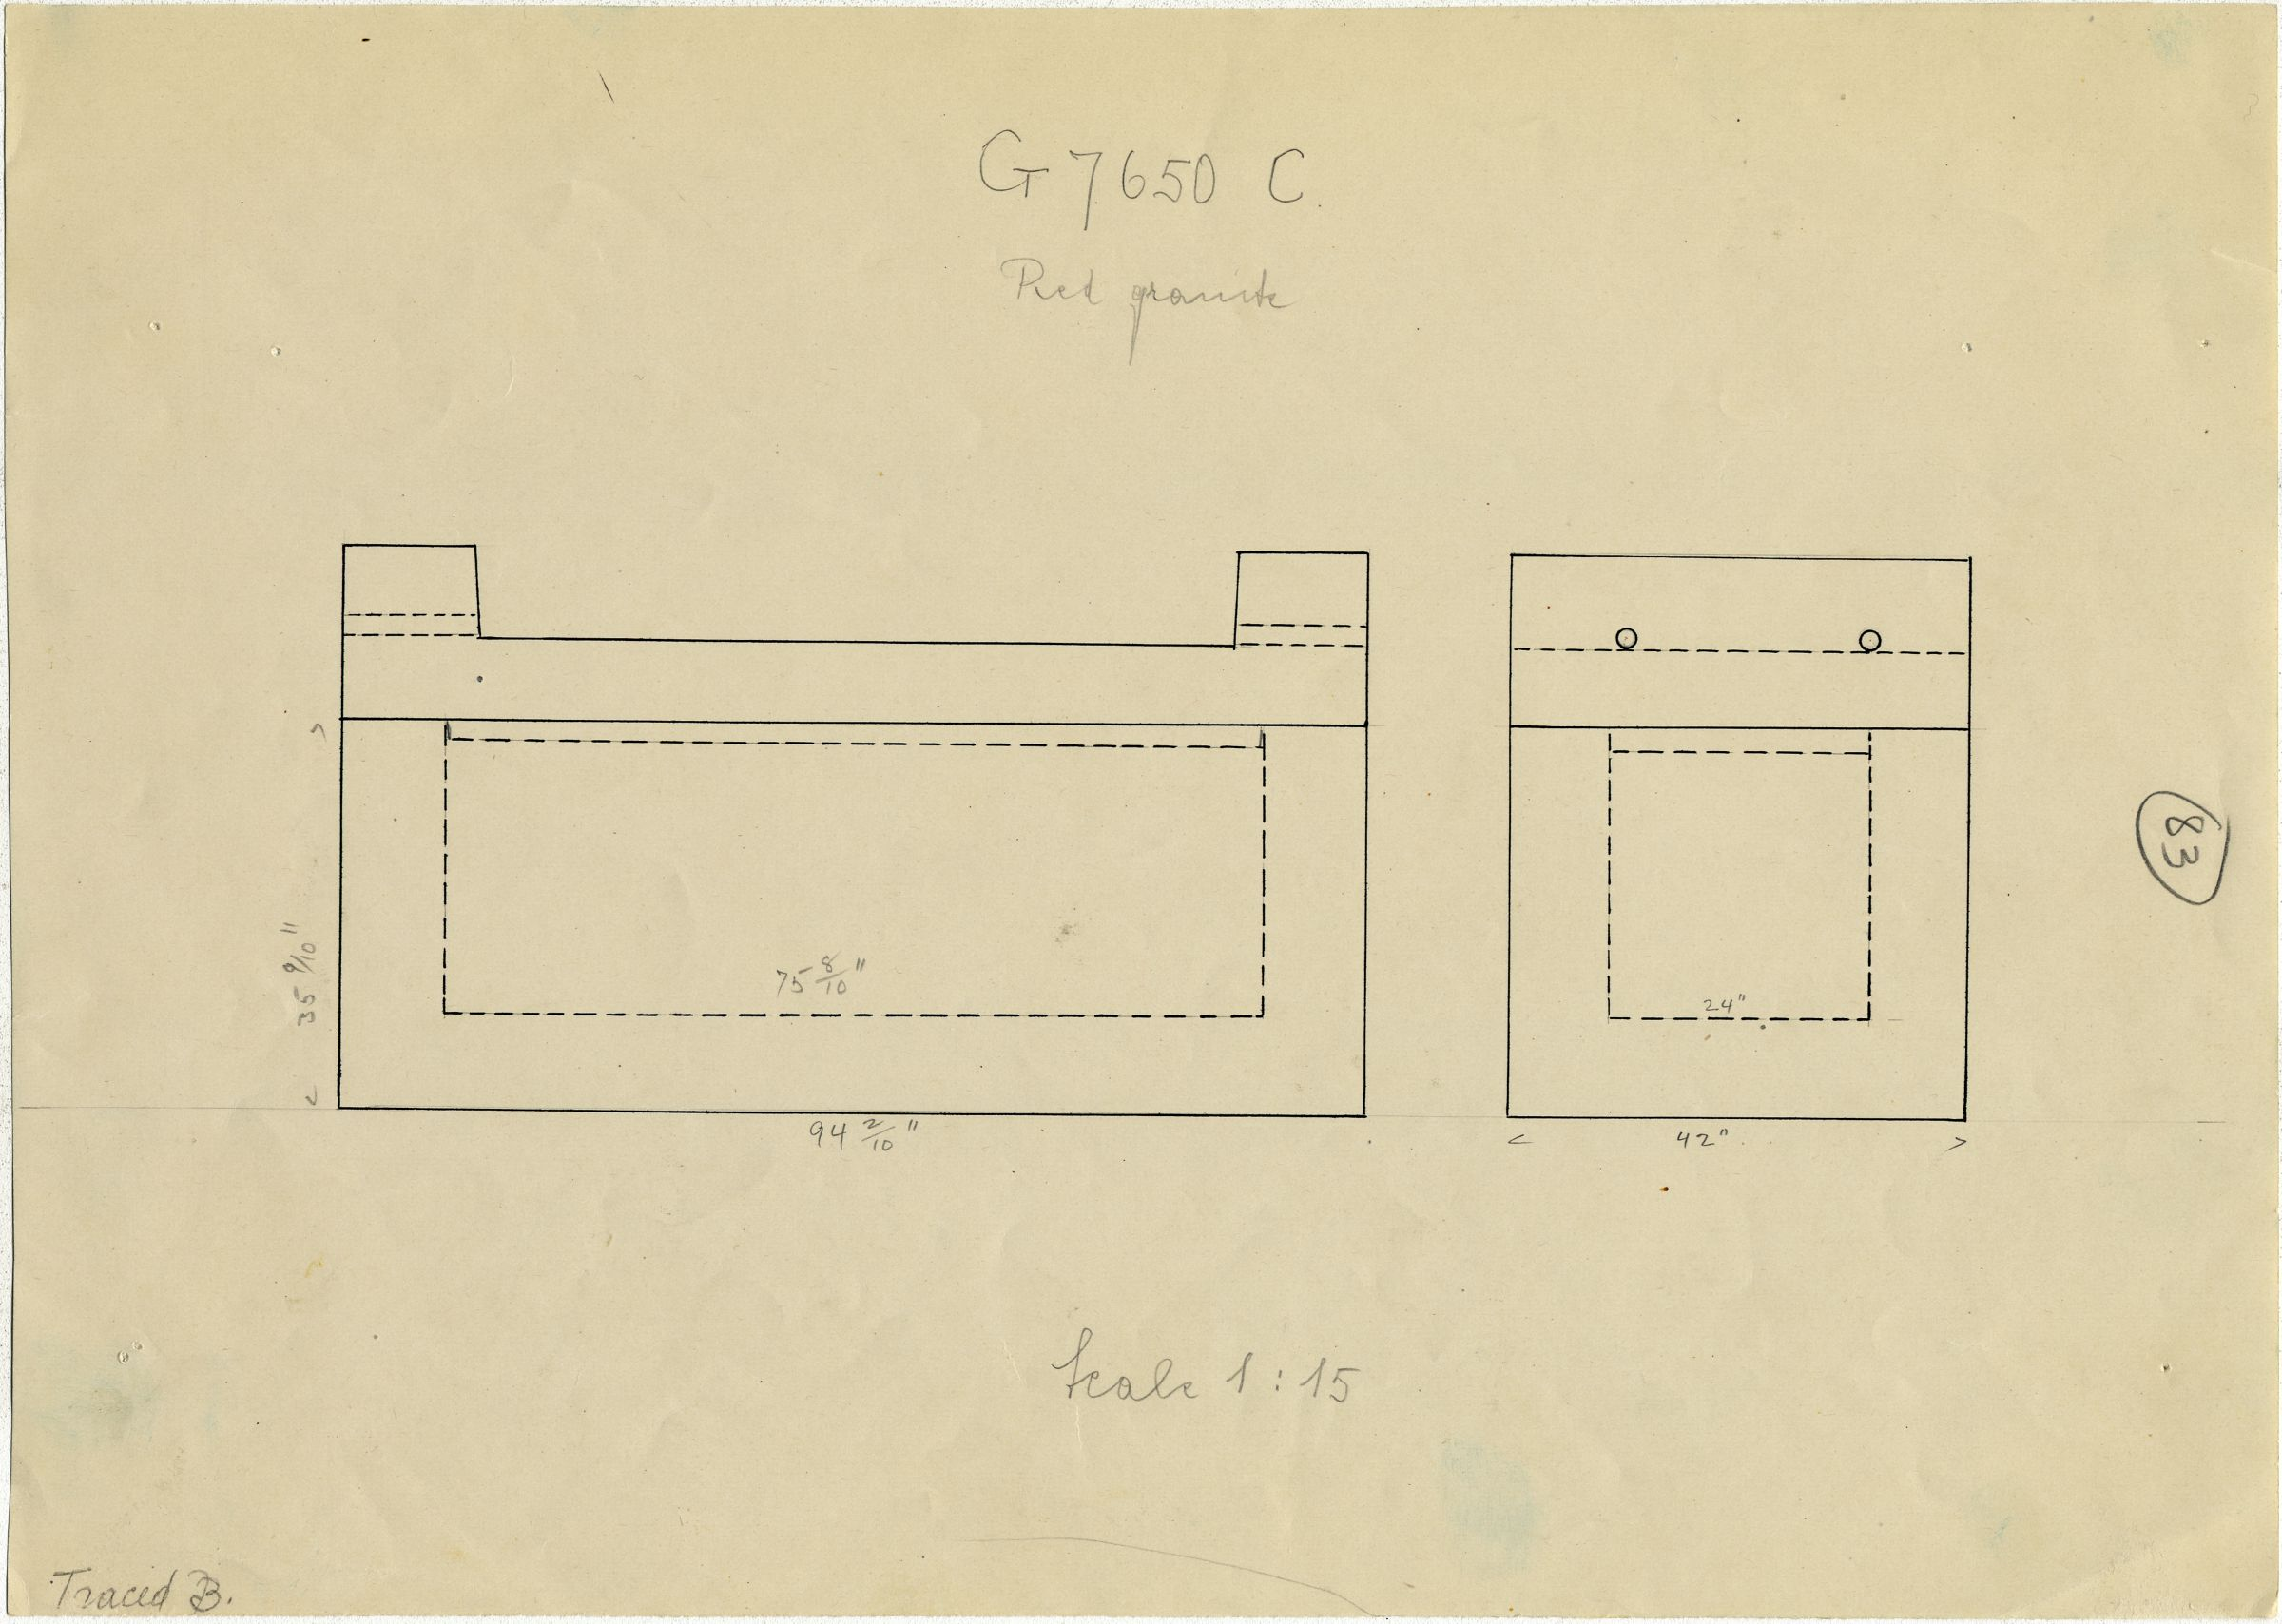 Maps and plans: G 7650, Shaft C, sarcophagus